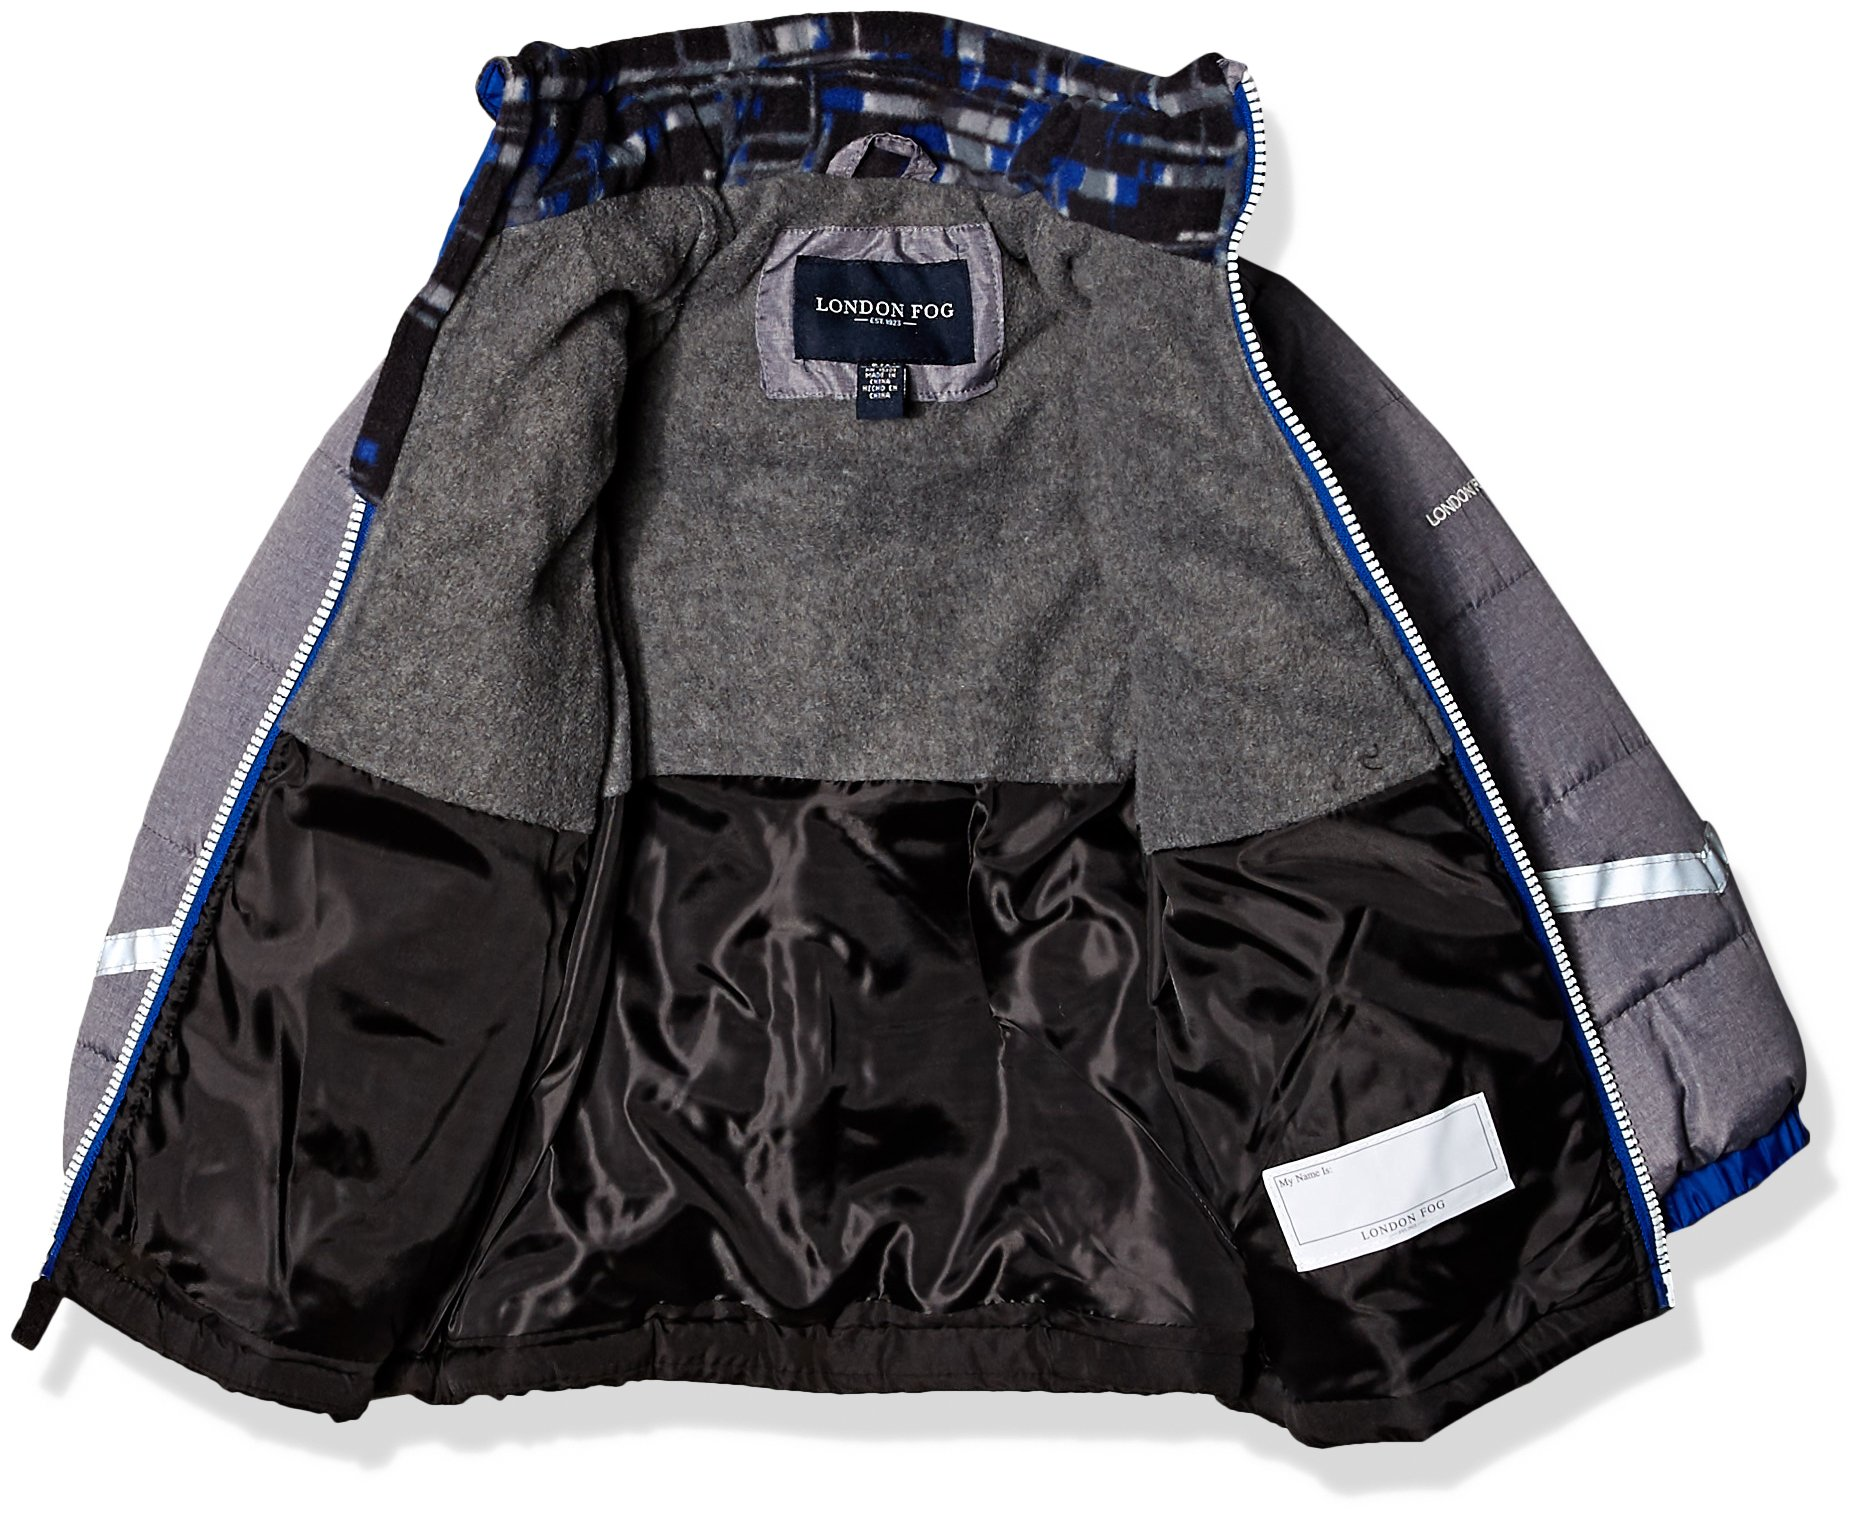 London Fog Toddler Boys' Active Heavyweight Jacket with Ski Cap, Super Blue, 2T by London Fog (Image #2)